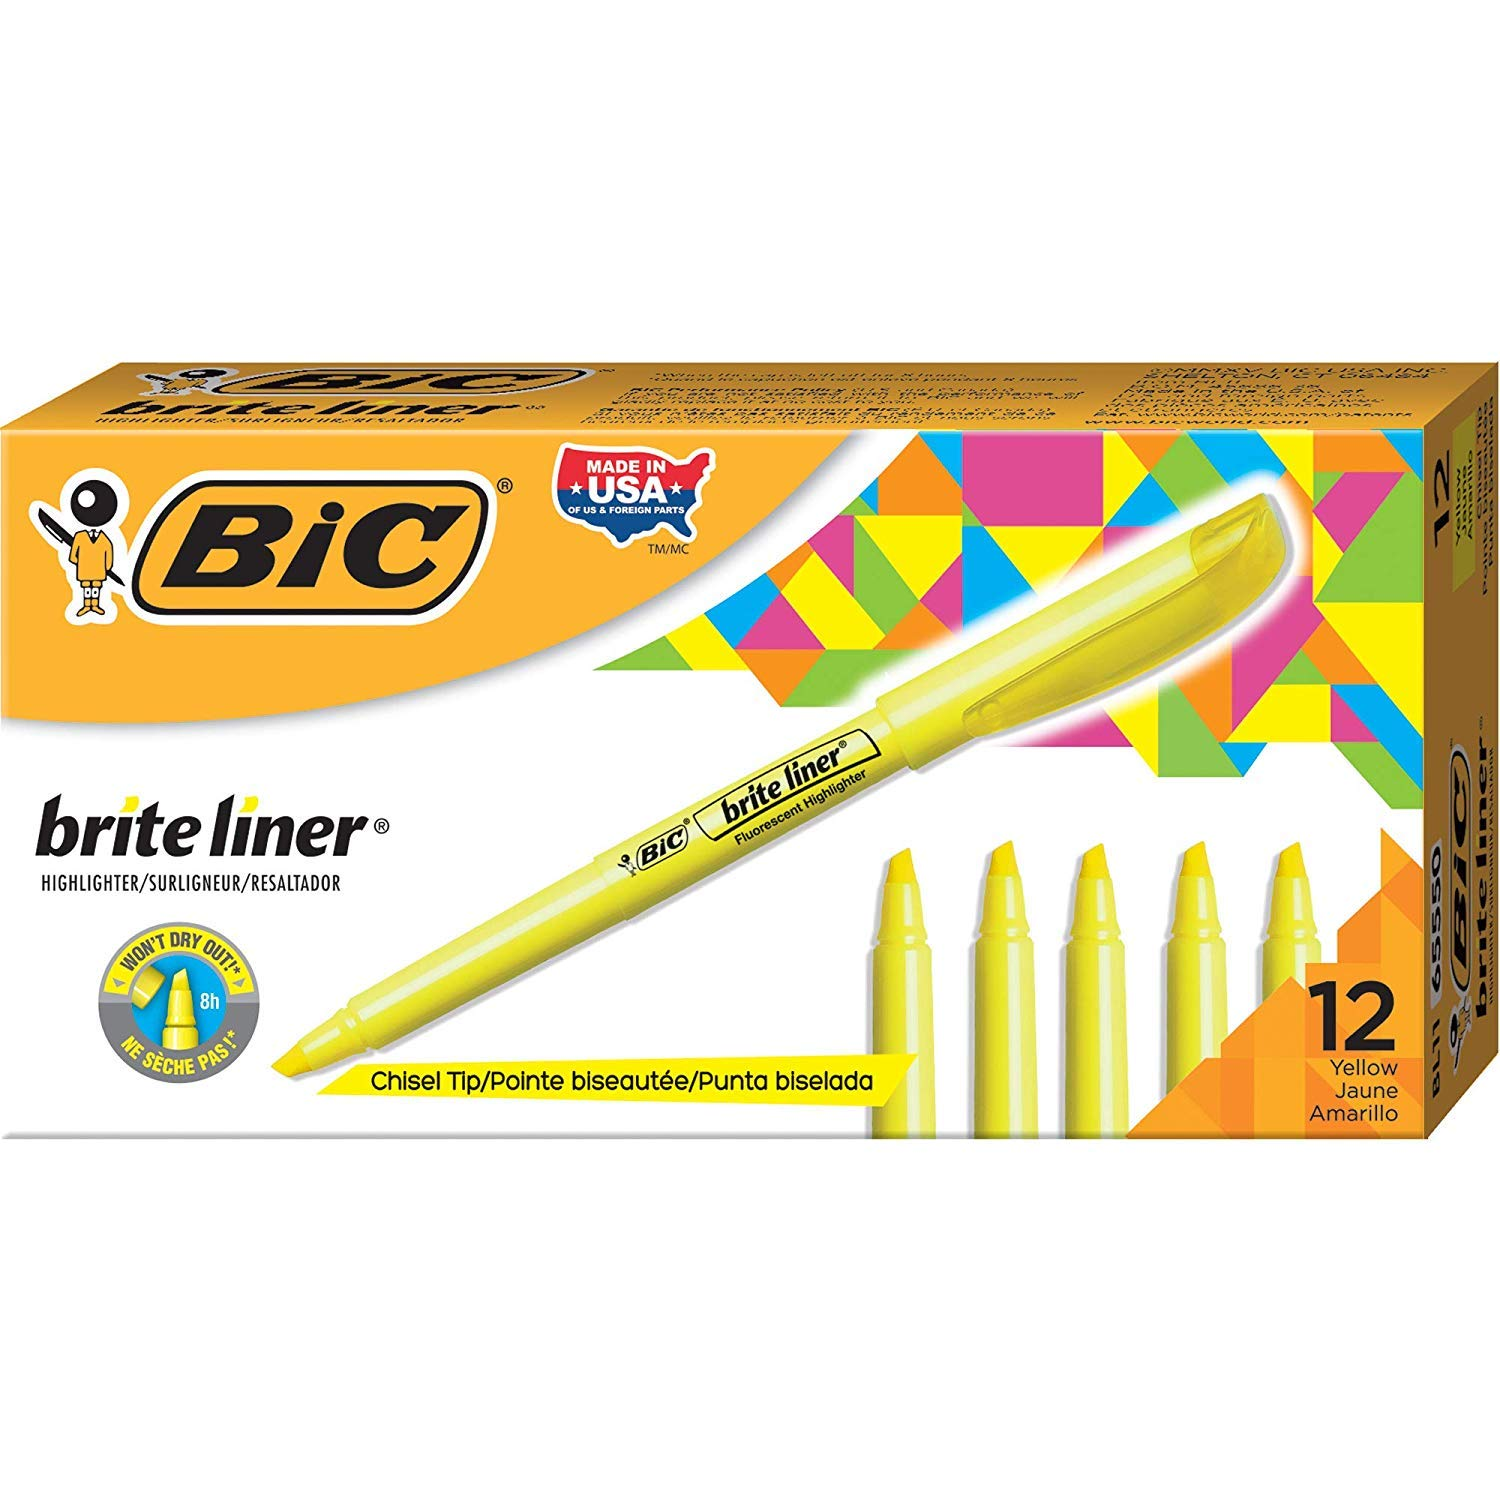 BIC Brite Liner Highlighter, Chisel Tip, Yellow, 12-Count, Pack of 7 by BIC